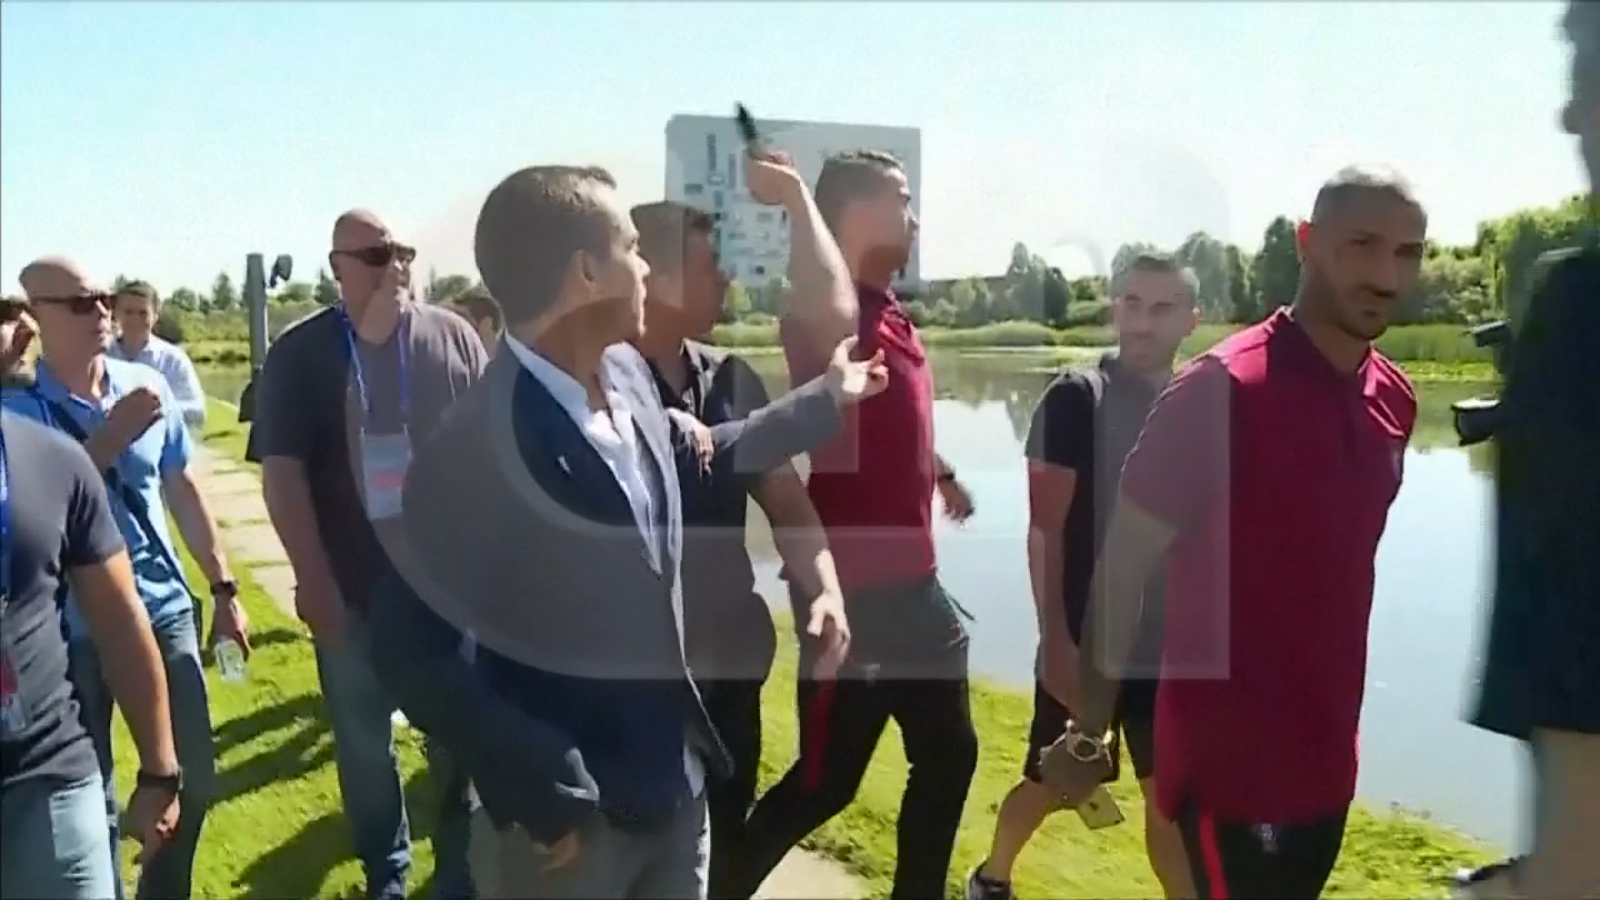 Euro 2016: Portugal captain Cristiano Ronaldo throws microphone in lake after asked if he is ready for Hungary clash